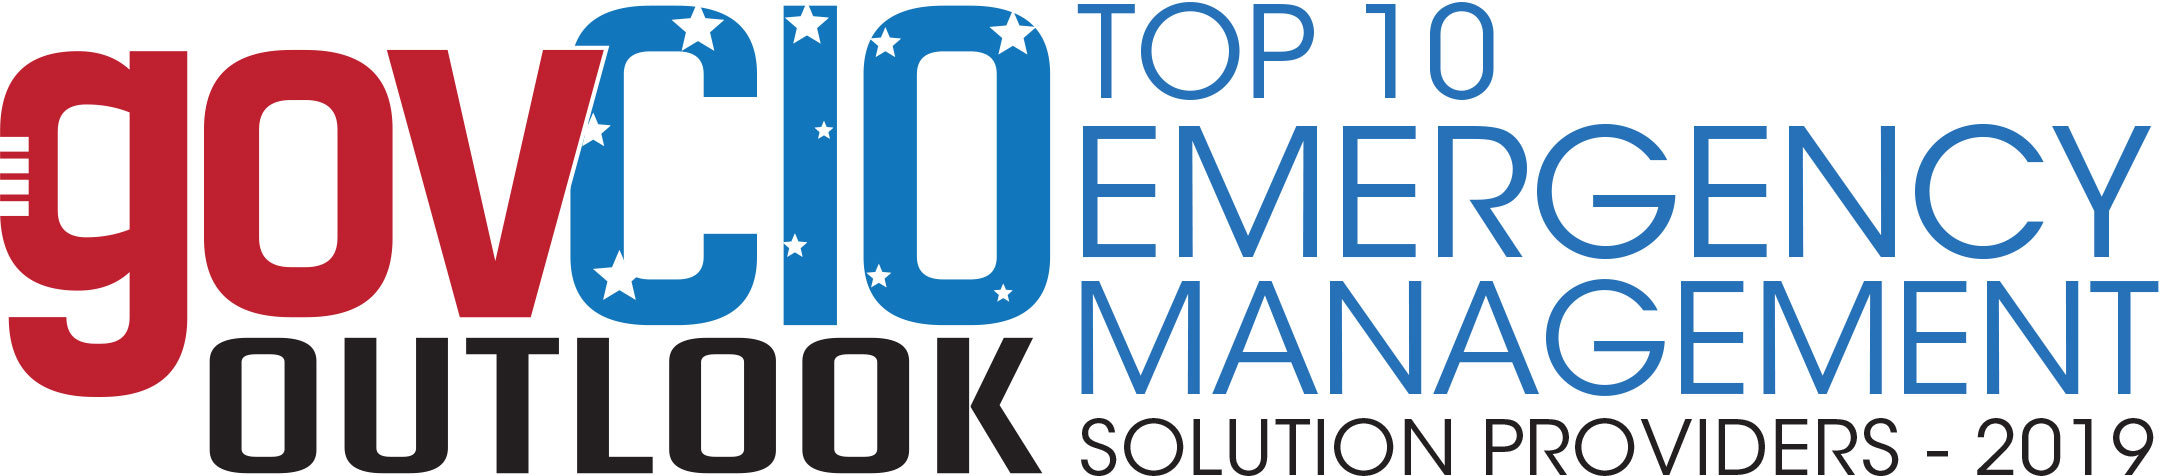 Top 10 Emergency Management Solution Companies - 2019